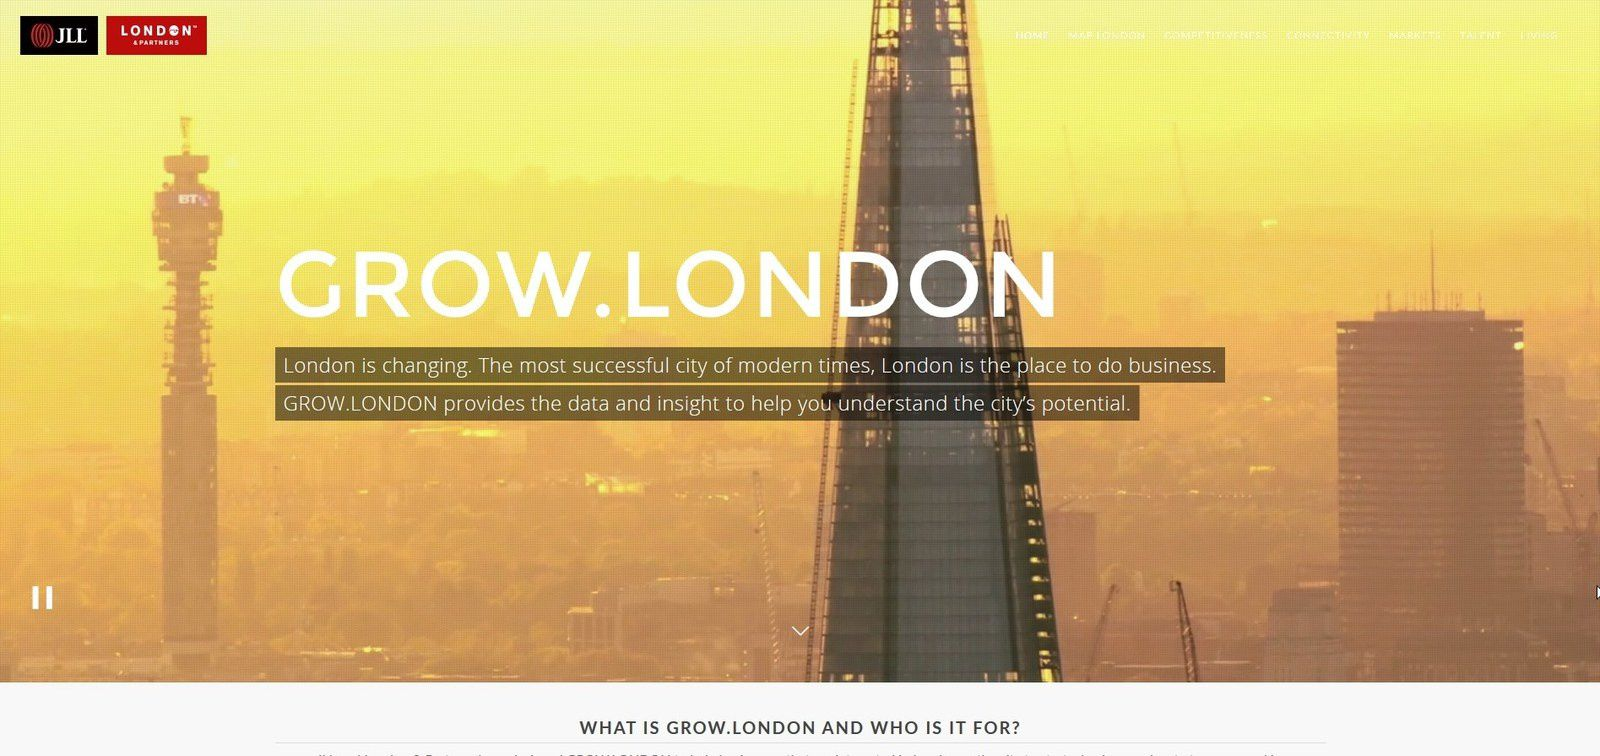 Londres, un site world-class pour affirmer son leadership